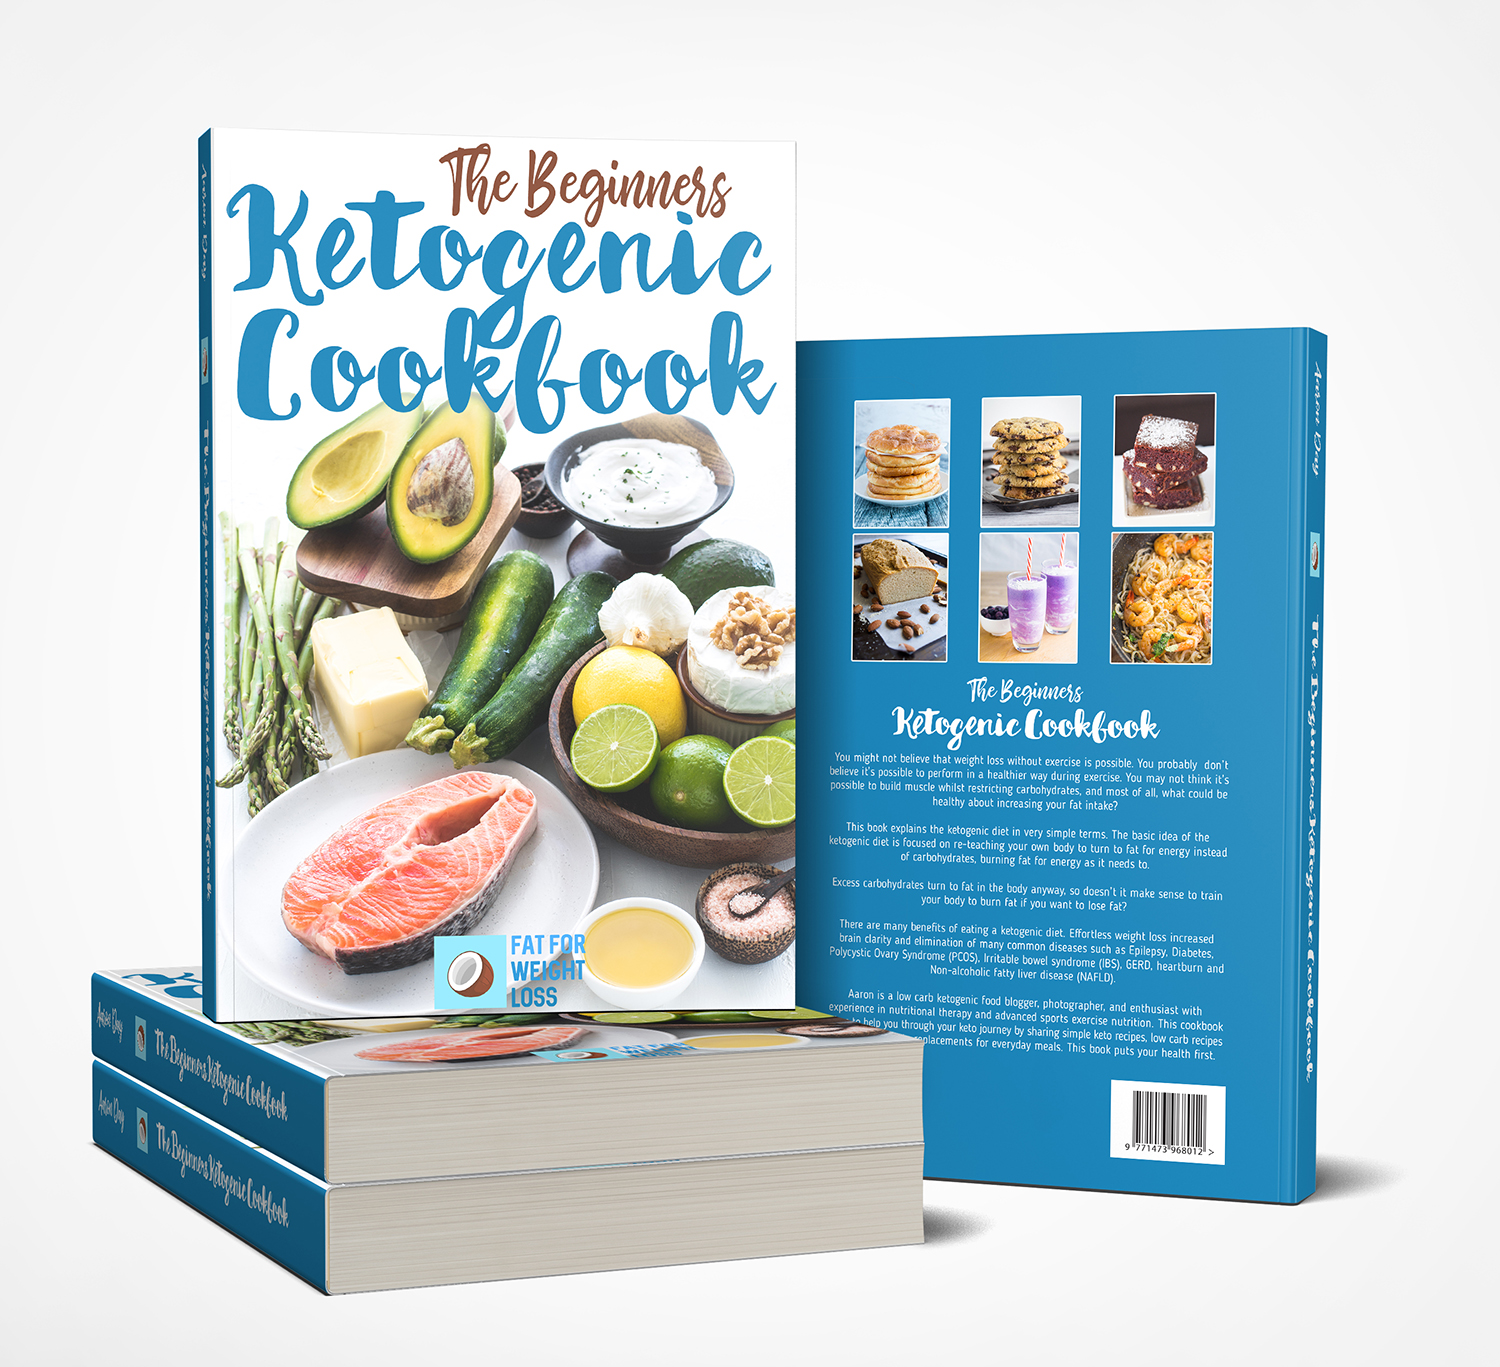 feminine upmarket cooking book cover design for fatforweightloss